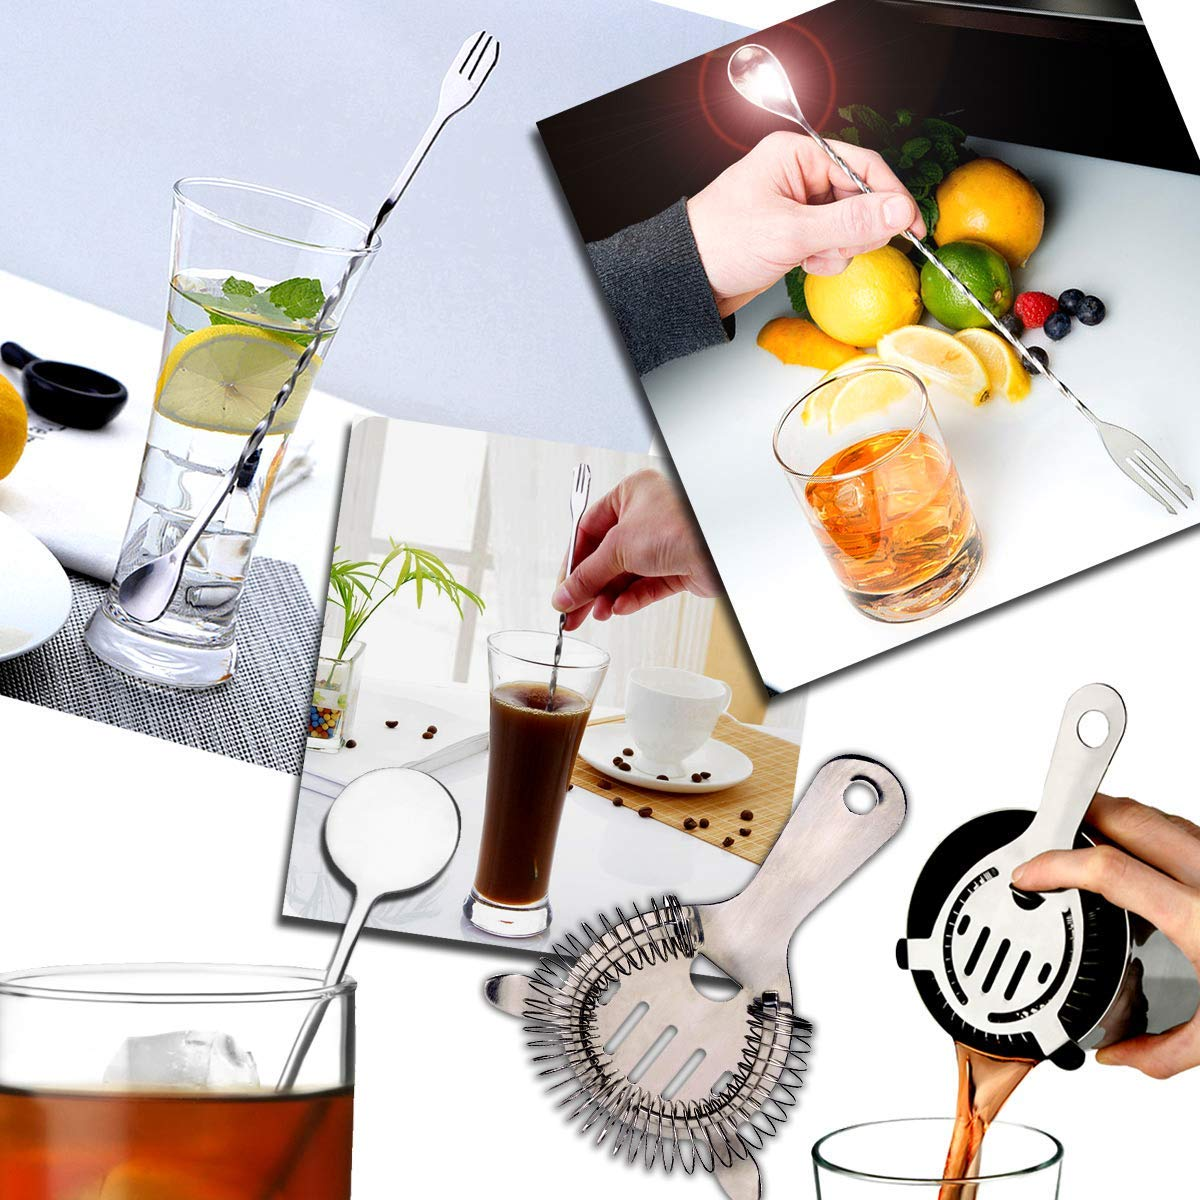 Cocktail Maker Bar Set,Premium Stainless Steel Home Cocktail Making Kit with Manhattan Cocktail Shaker,Muddler, Ice Filter-Colander, Double Ended Measure,Spirit Pourer, Stiring Spoon,Ice tong